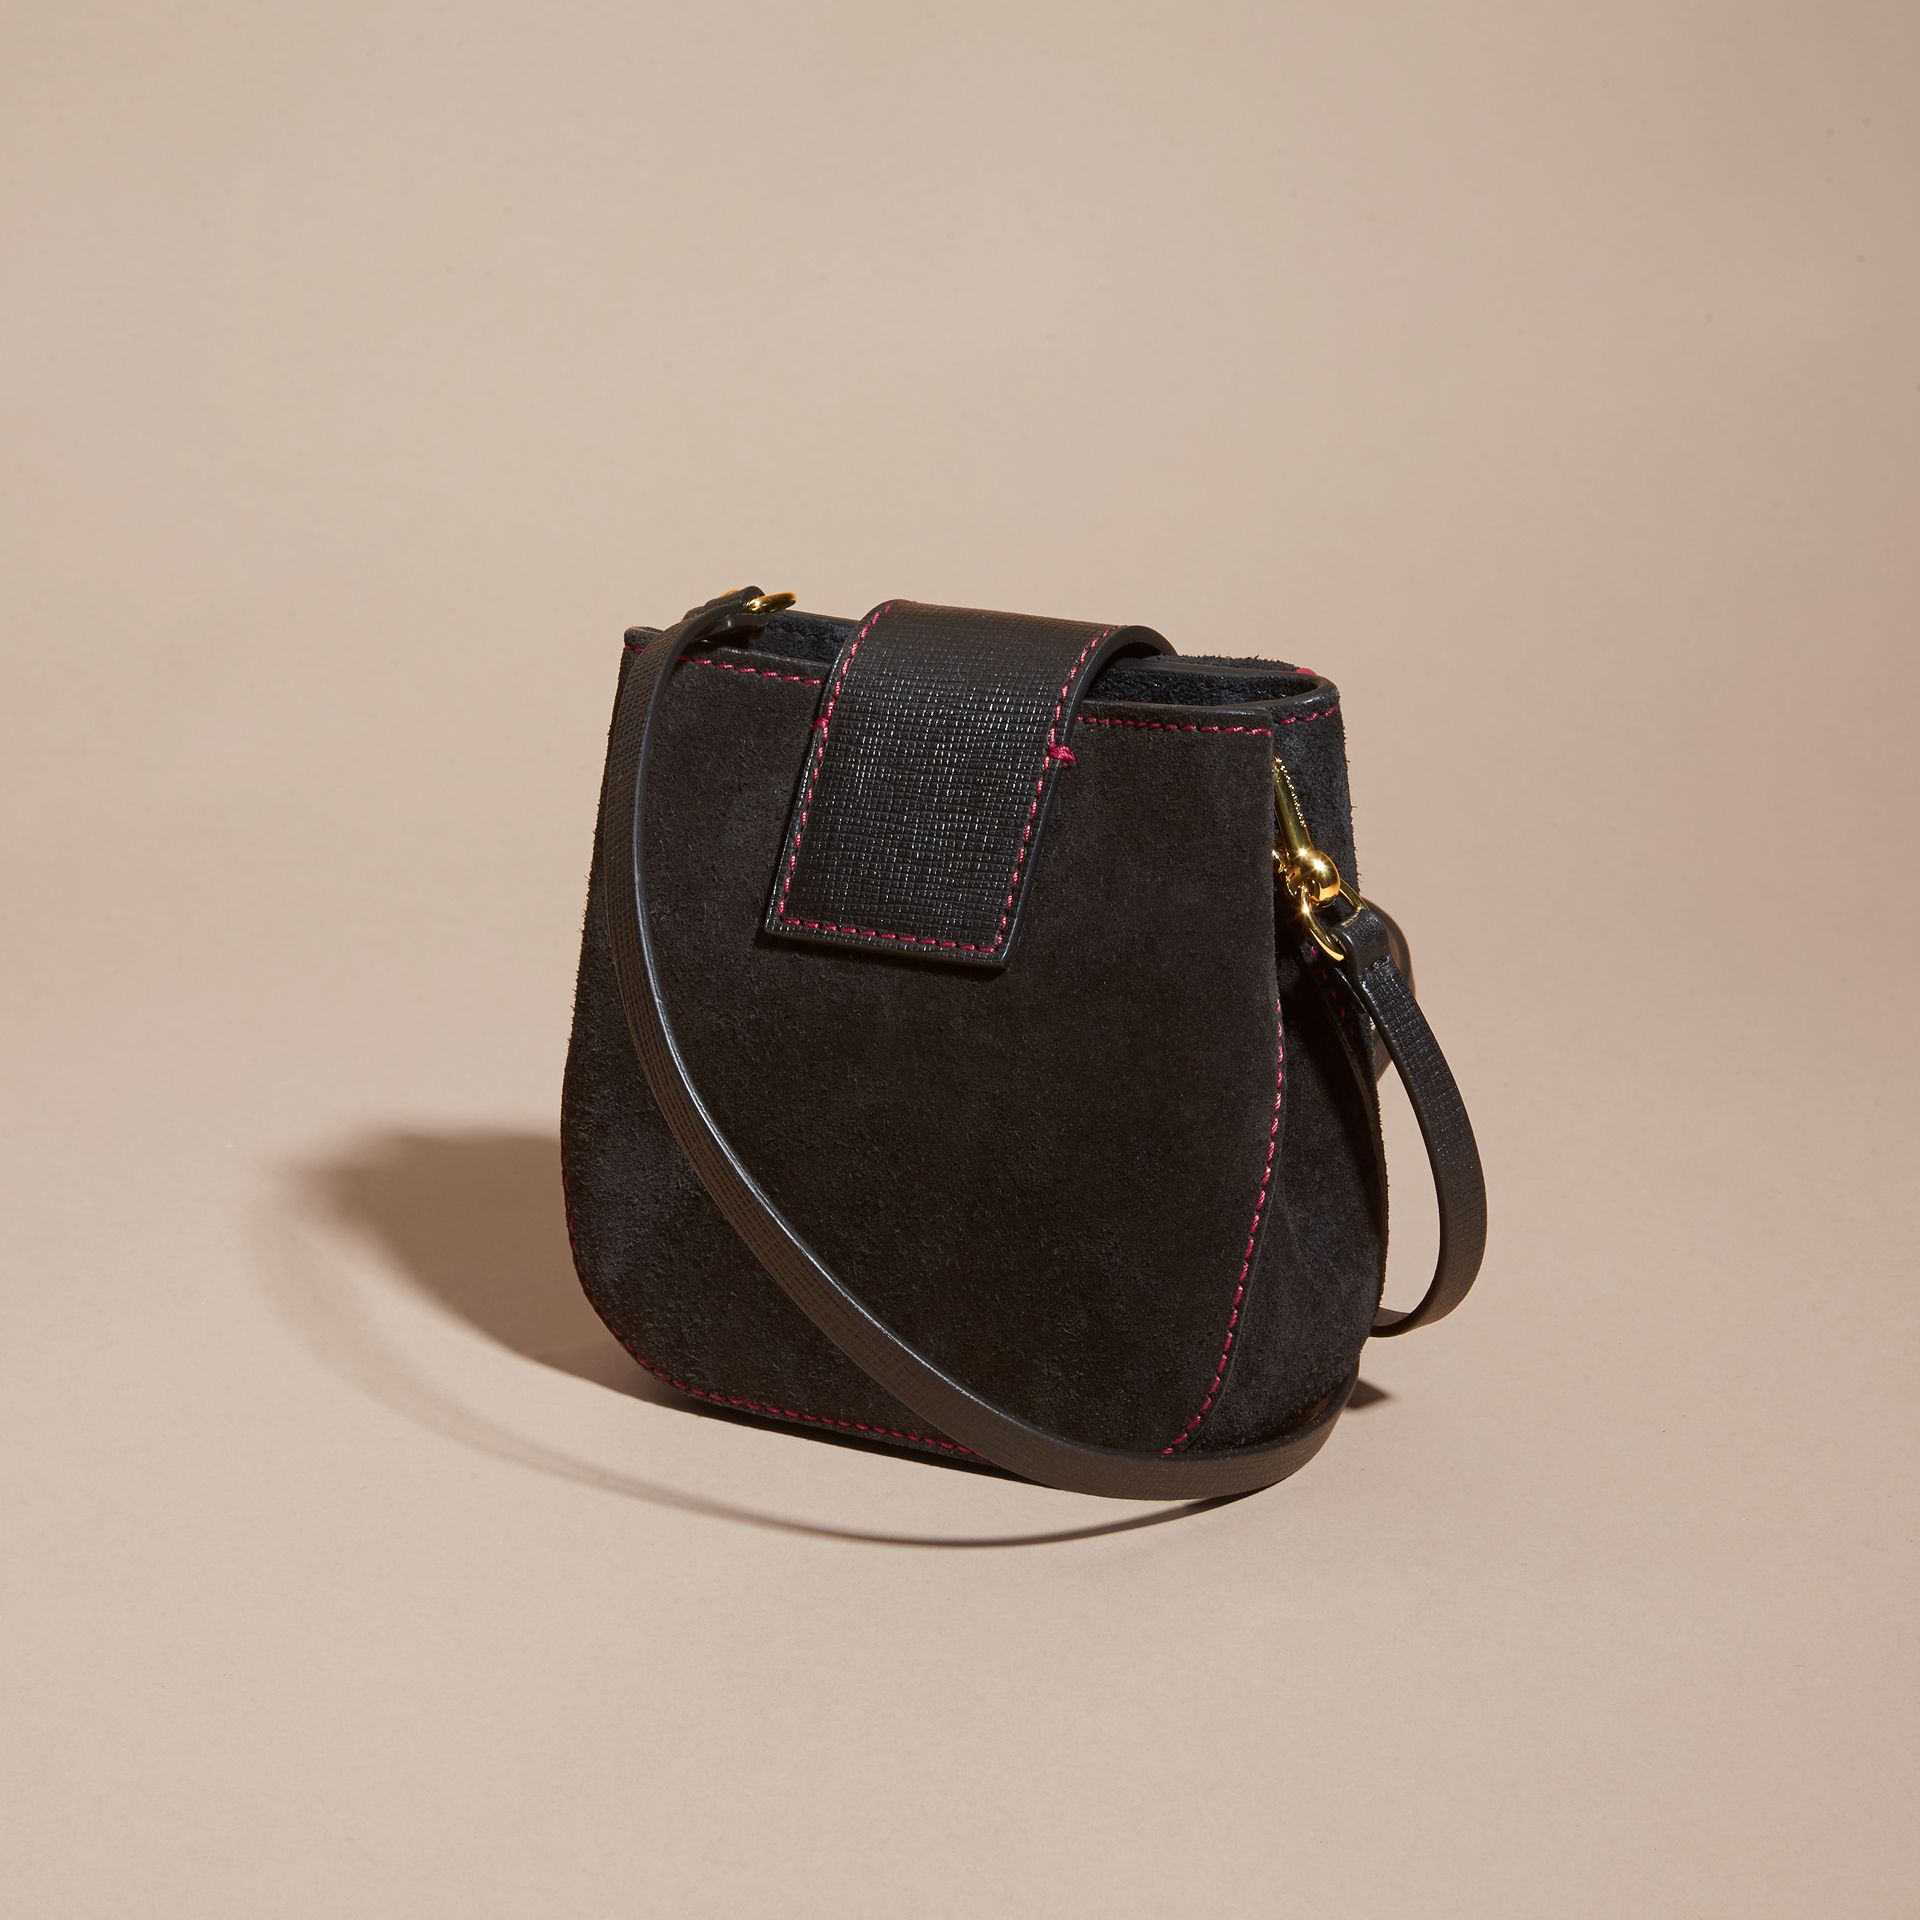 Black The Small Square Buckle Bag in Suede and Leather Black - gallery image 5